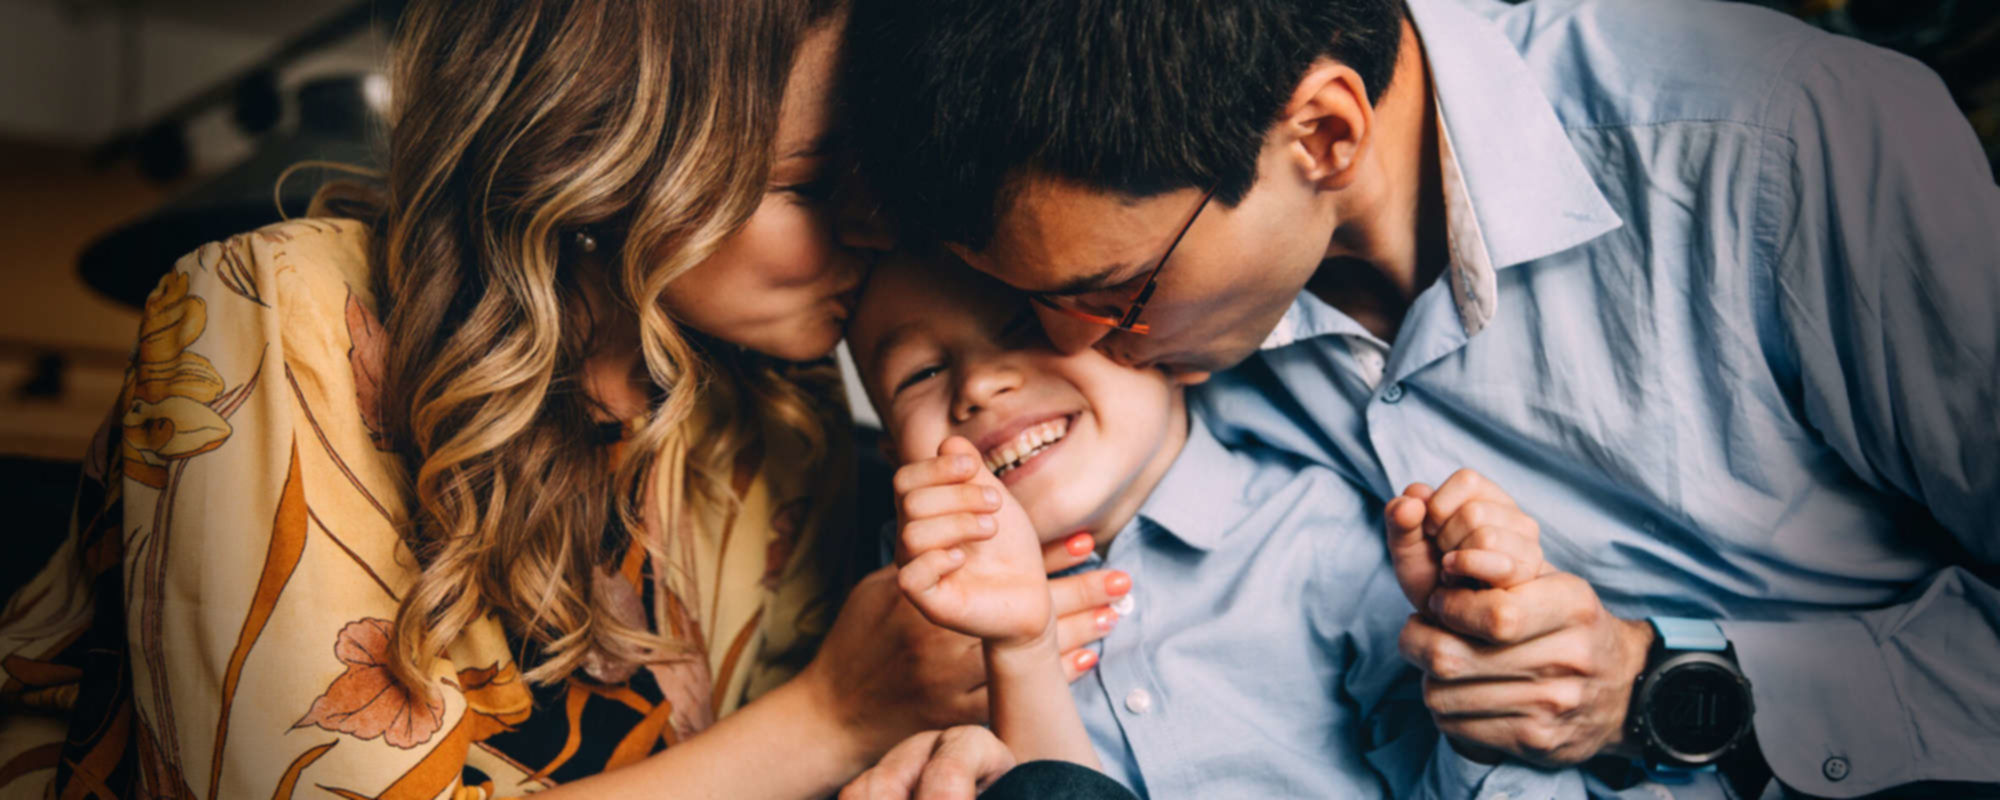 Consult with a trusted attorney <br> on family matters